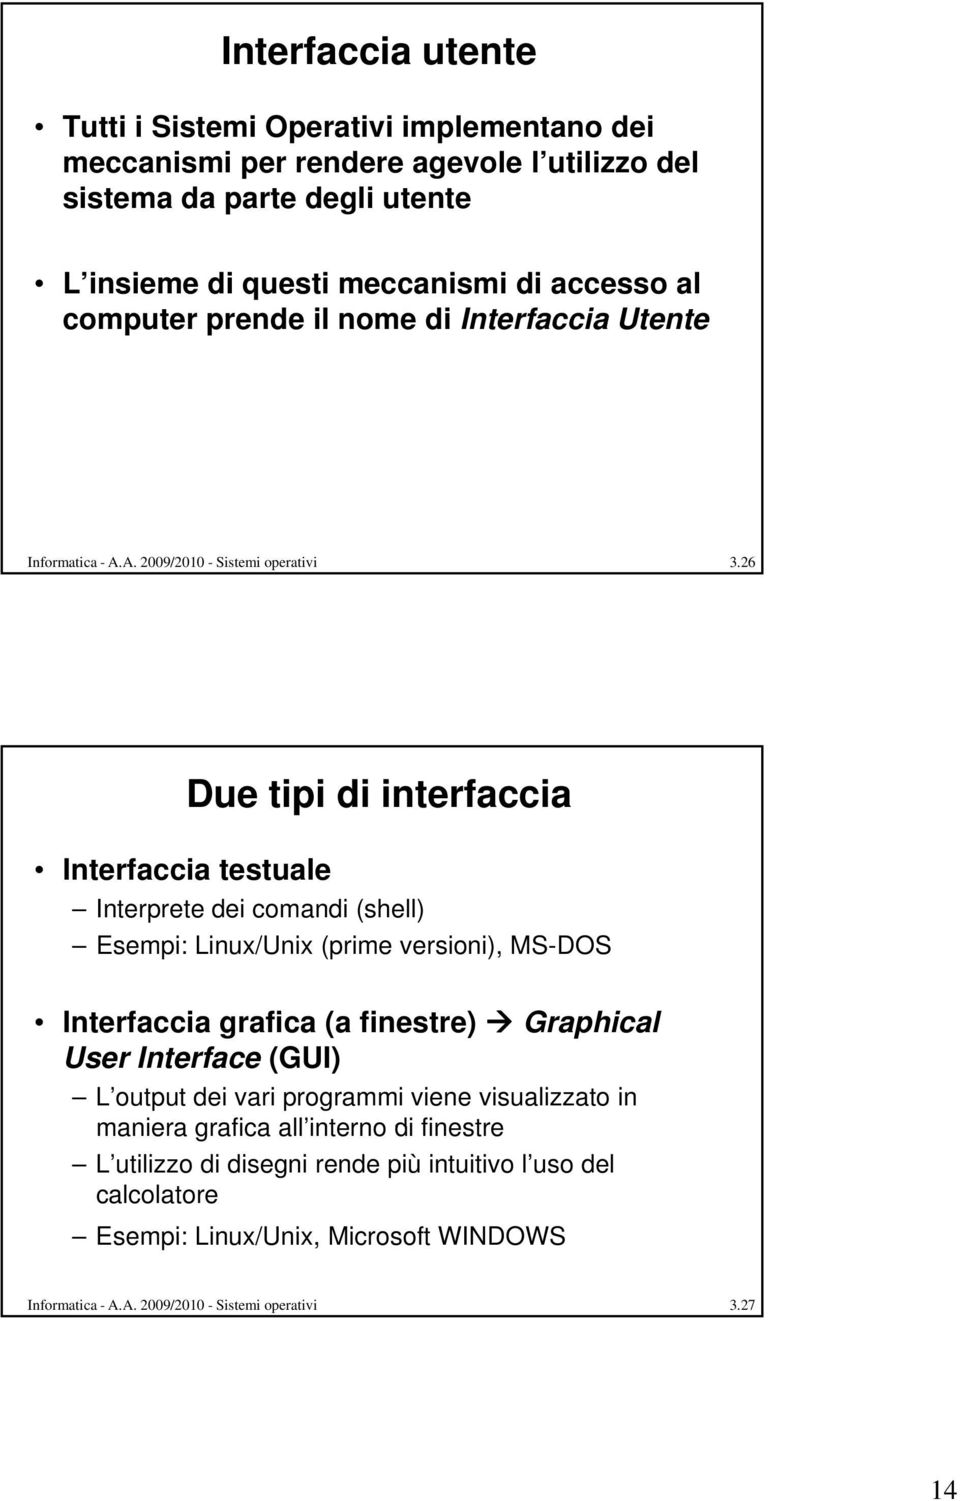 26 Interfaccia testuale Due tipi di interfaccia Interprete dei comandi (shell) Esempi: Linux/Unix i (prime versioni), i) MS-DOS Interfaccia grafica (a finestre) Graphical User